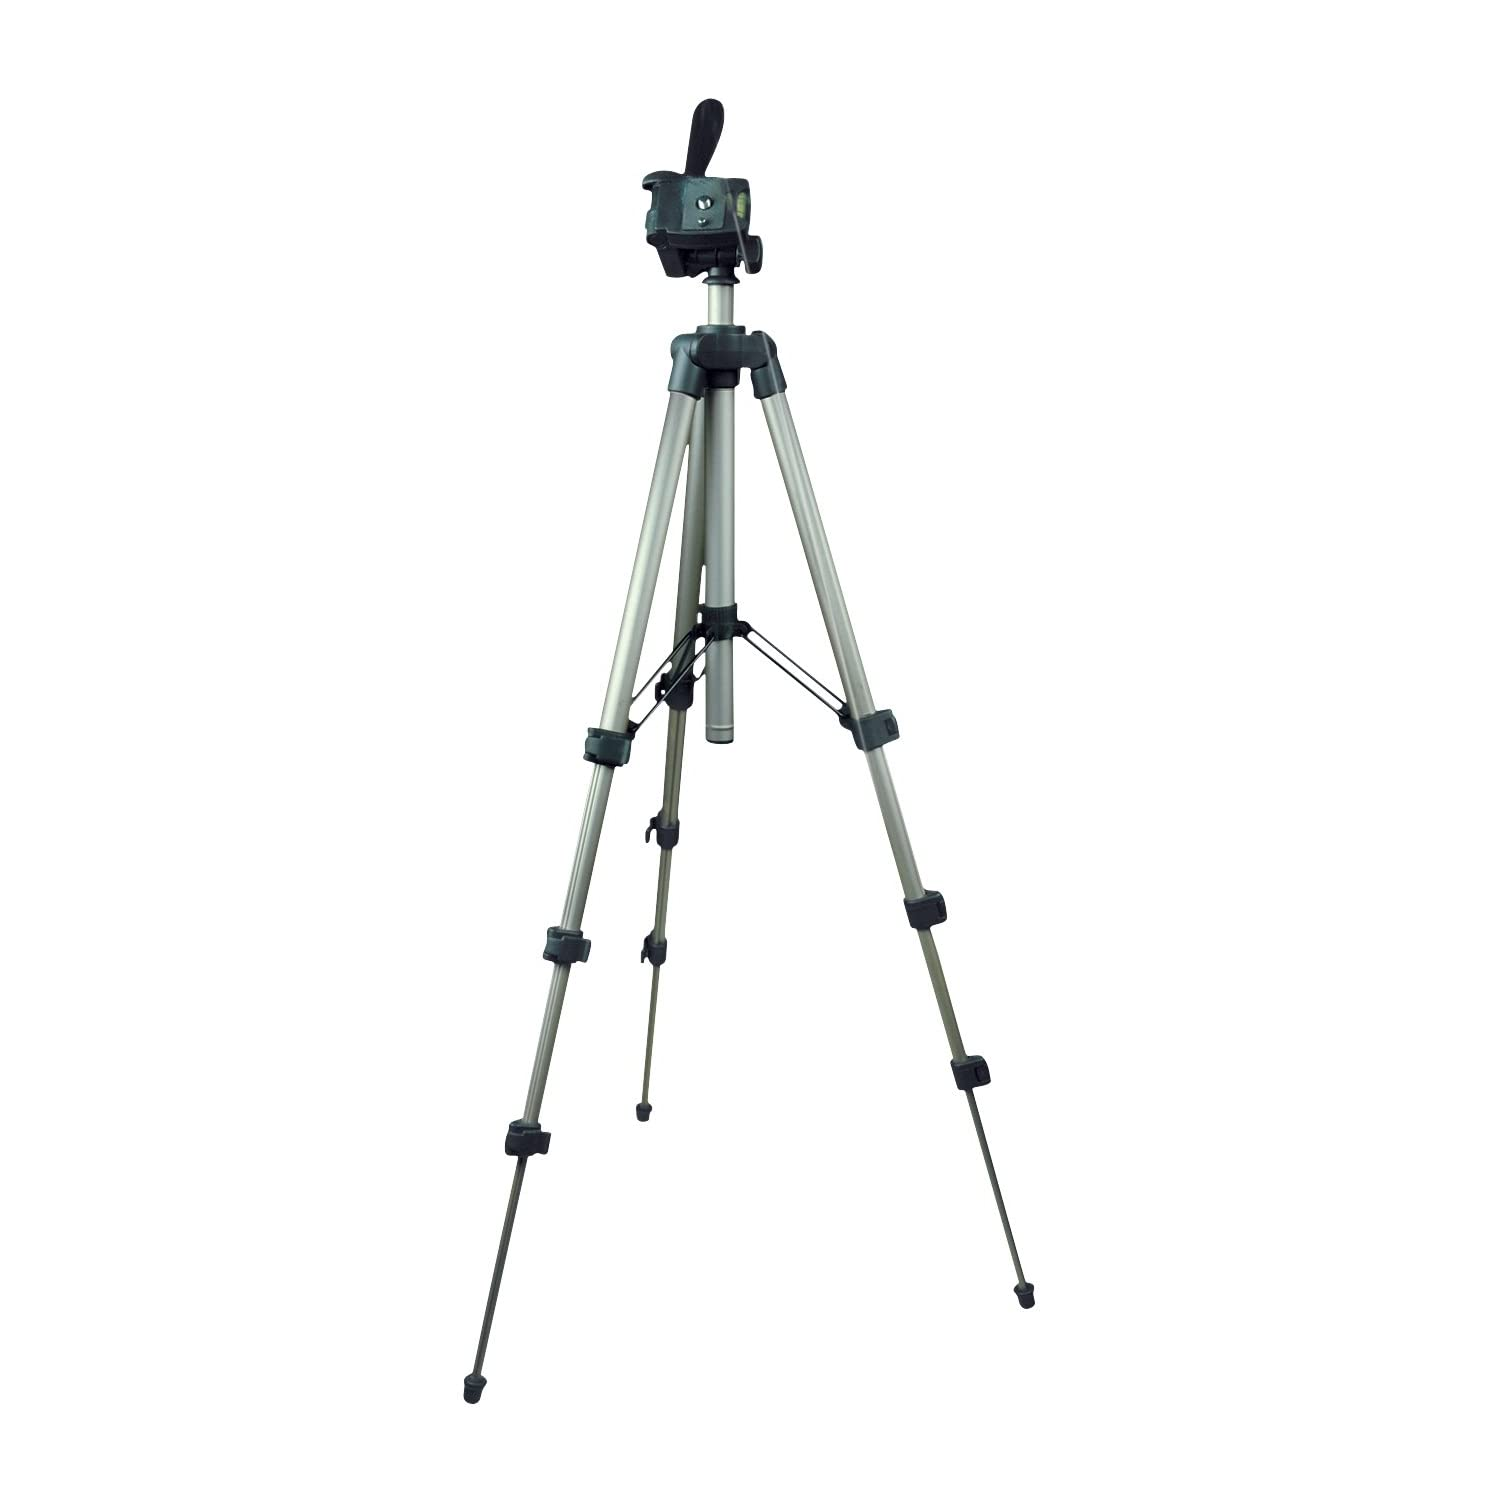 konig kn tripod19 mini trepied pour appareil photo avec rotule t. Black Bedroom Furniture Sets. Home Design Ideas